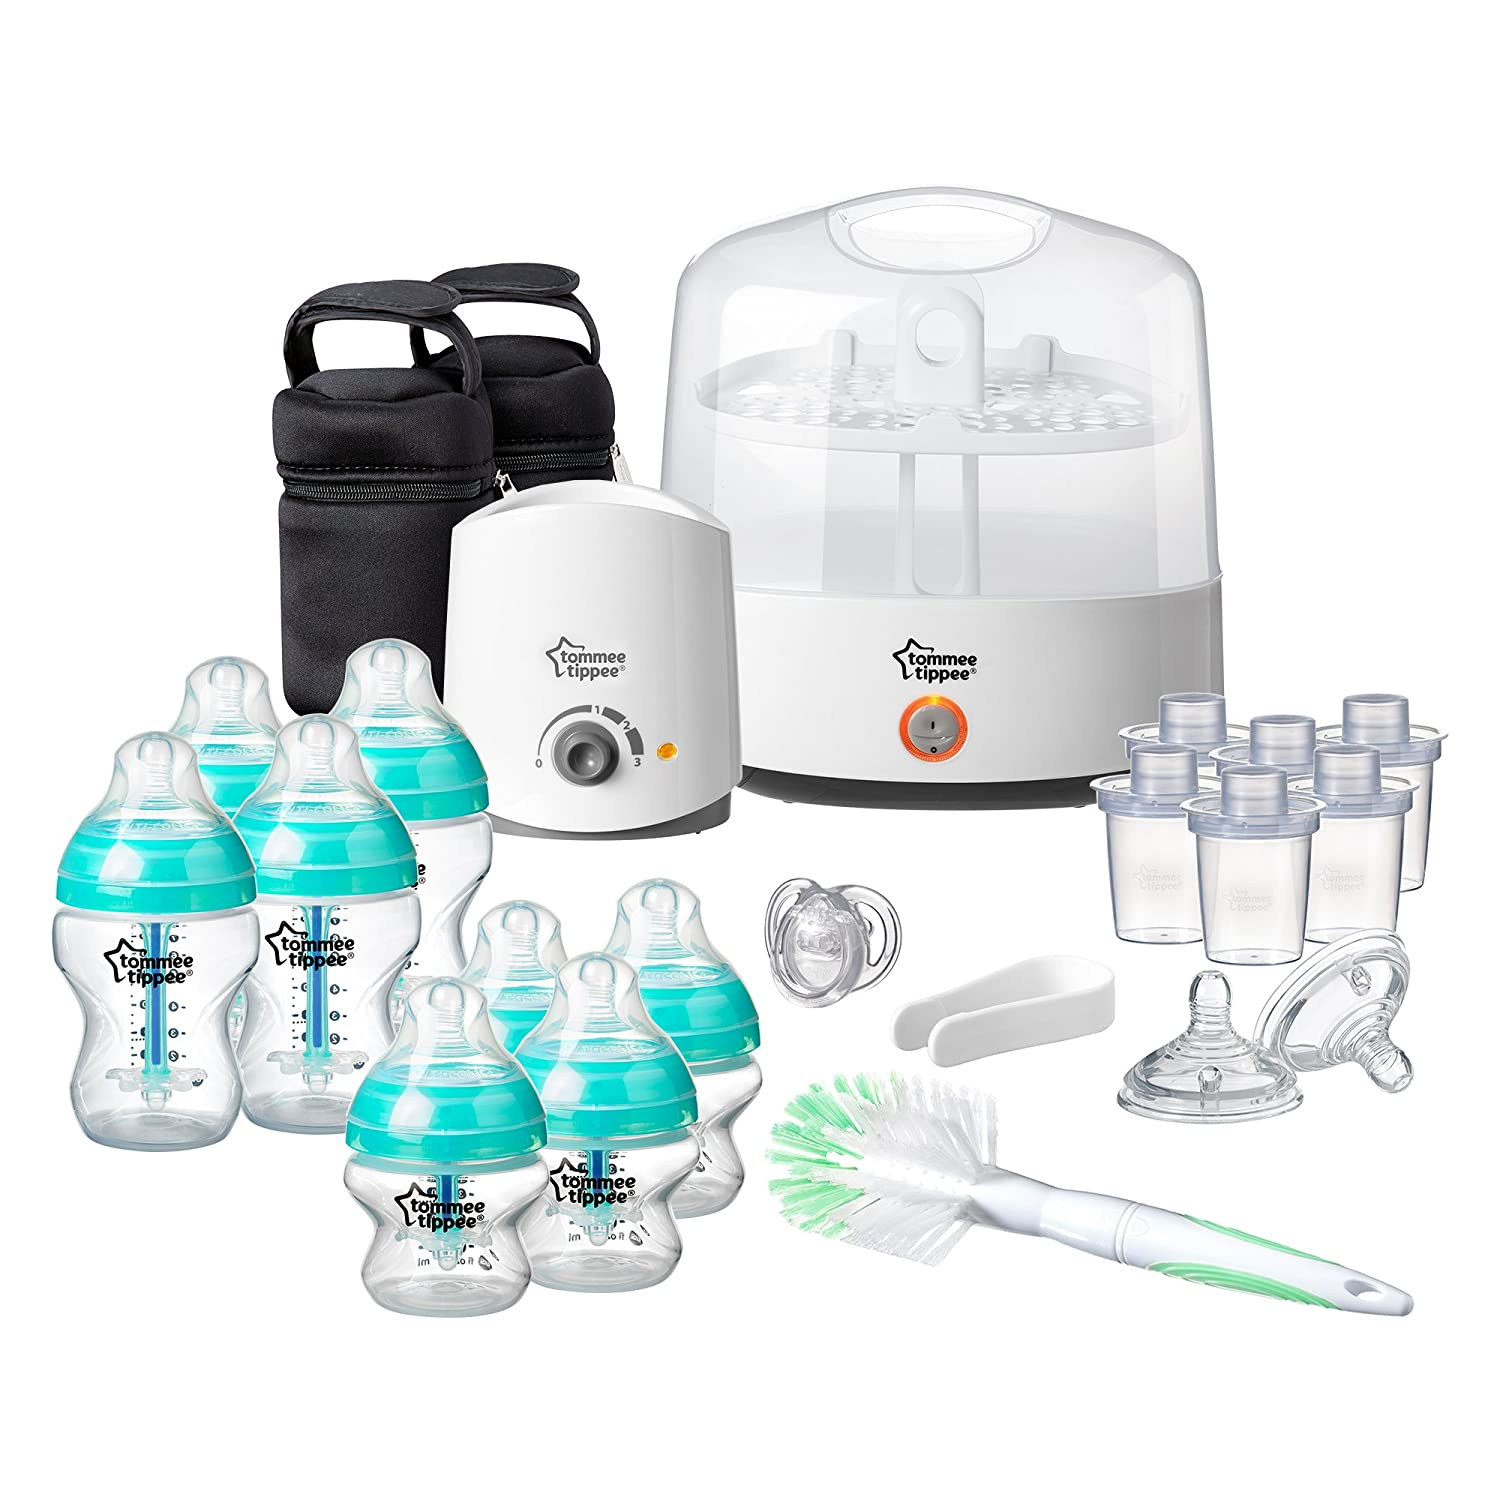 Tommee Tippee Advanced Anti-Colic Complete Feeding Set Mayborn Group 422584